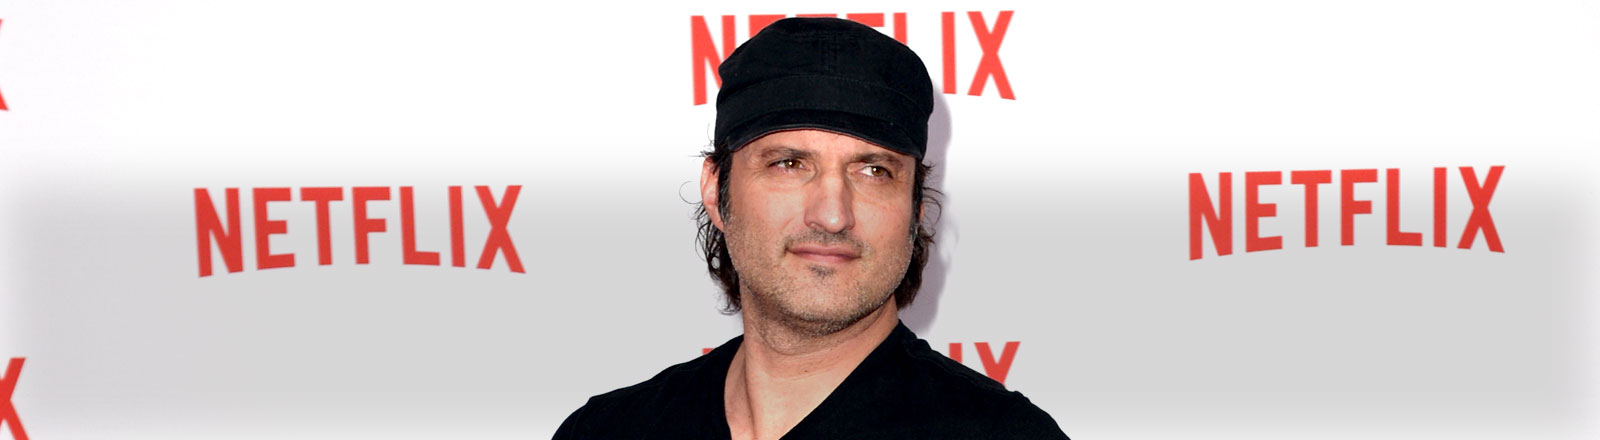 Regisseur Robert Rodriguez kommt am 16.09.2014 in Berlin zu der Netflix Party.